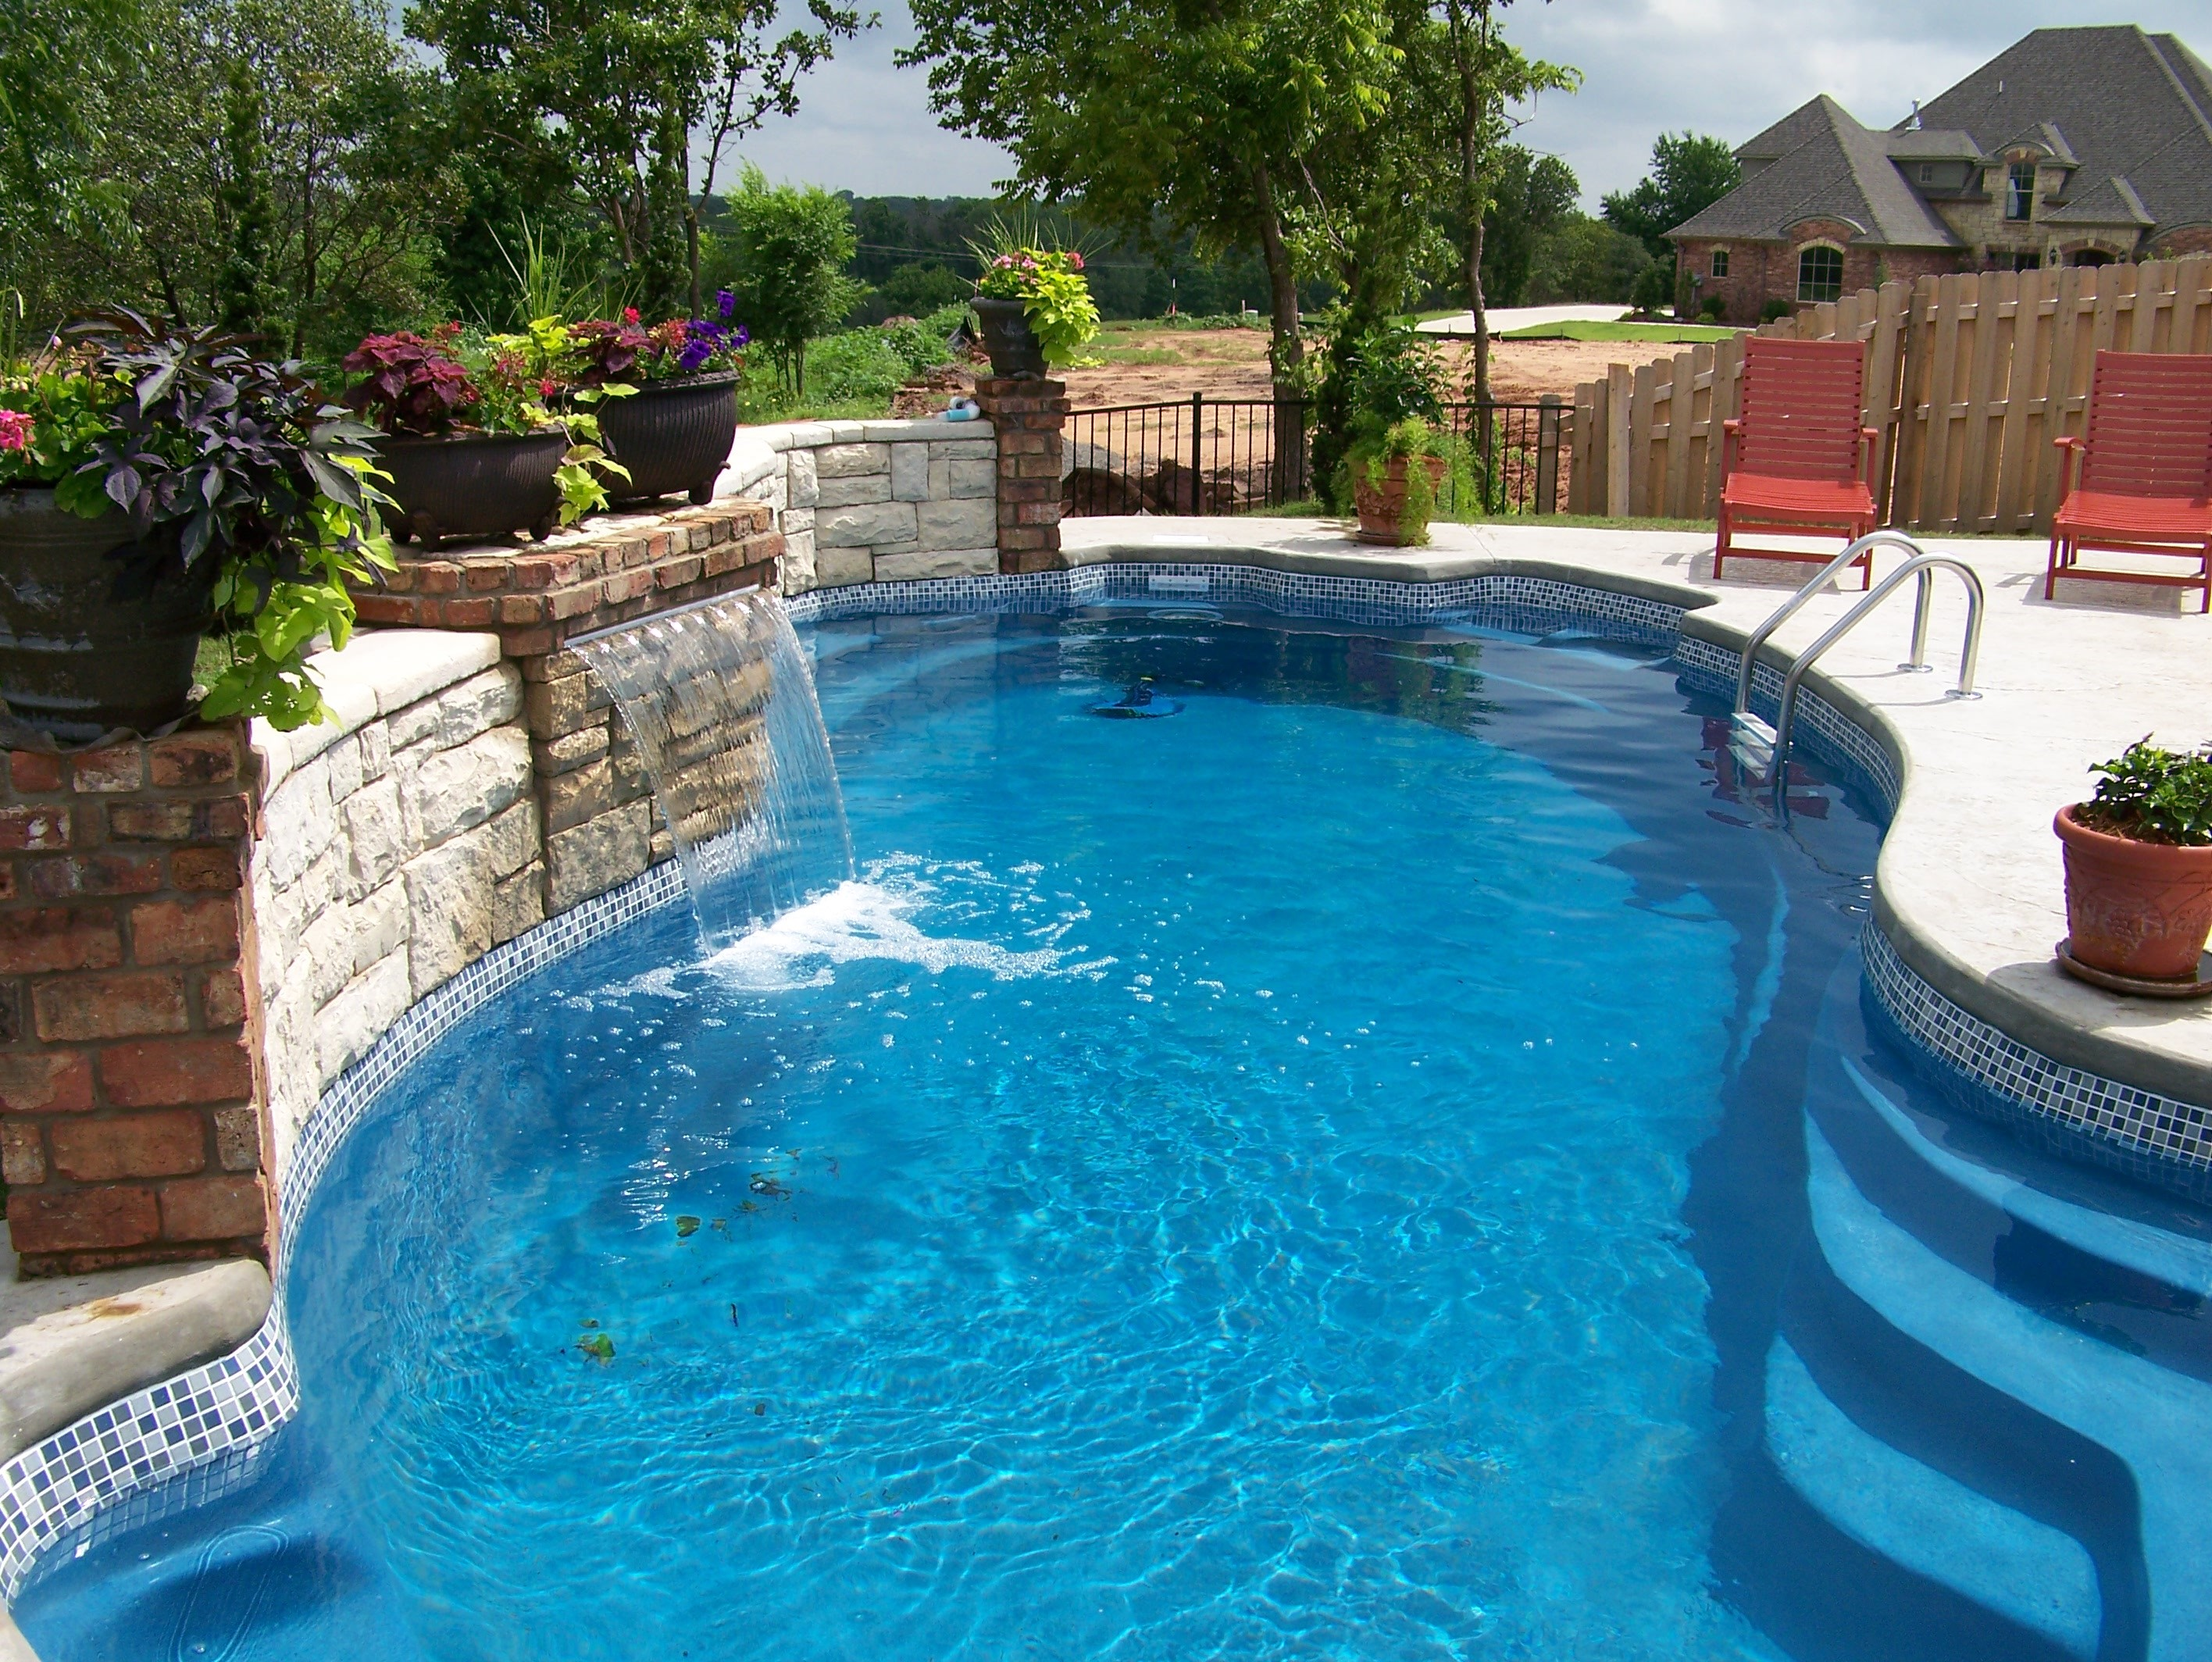 Fiberglass pools swimming pool contractor tulsa - Swimming pool contractors oklahoma city ...